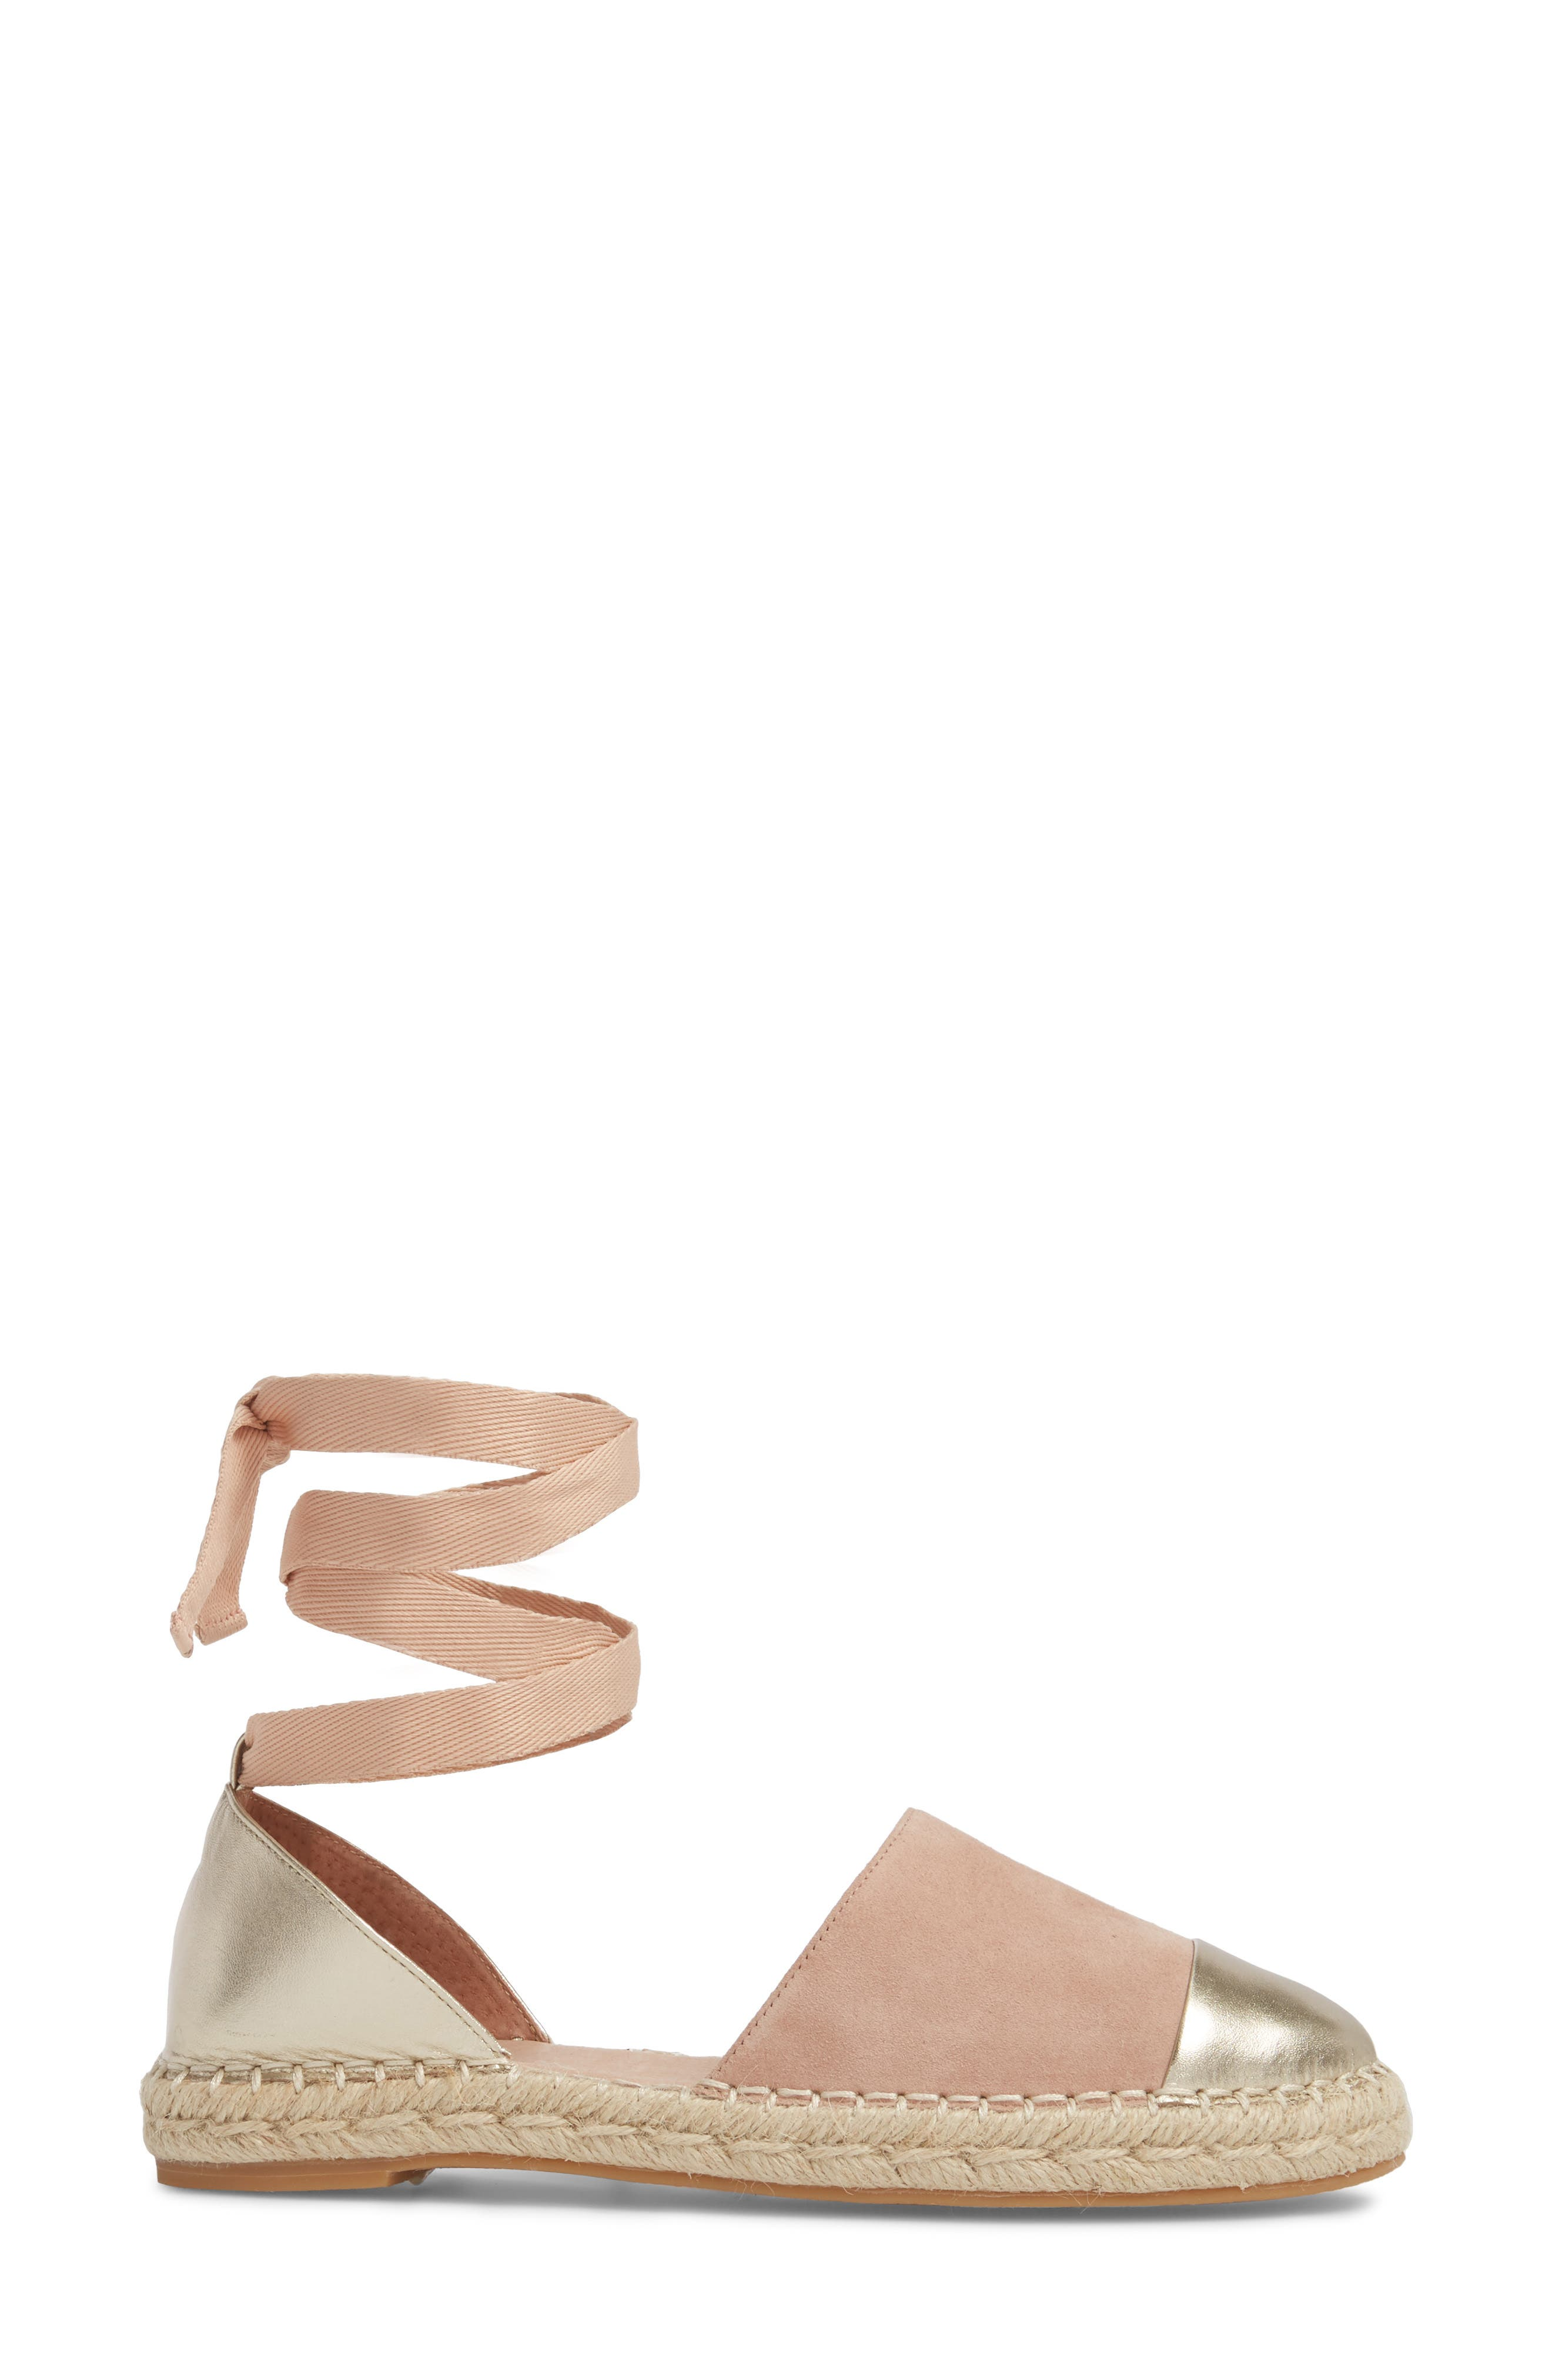 Cain Ankle-Tie Sandal,                             Alternate thumbnail 3, color,                             260